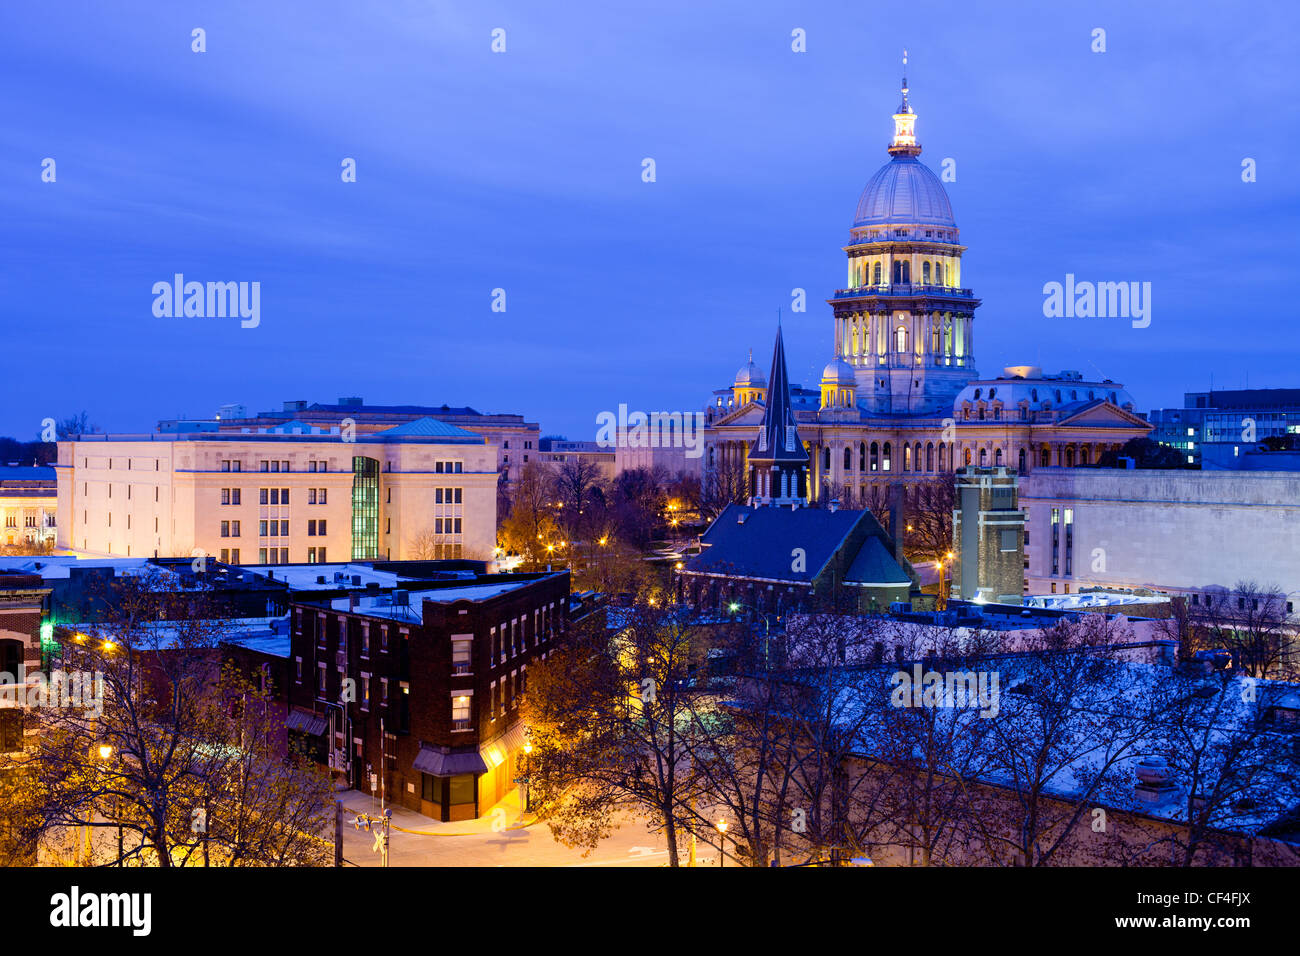 The illinois state capital building looms over downtown springfield stock photo royalty free for Olive garden springfield illinois